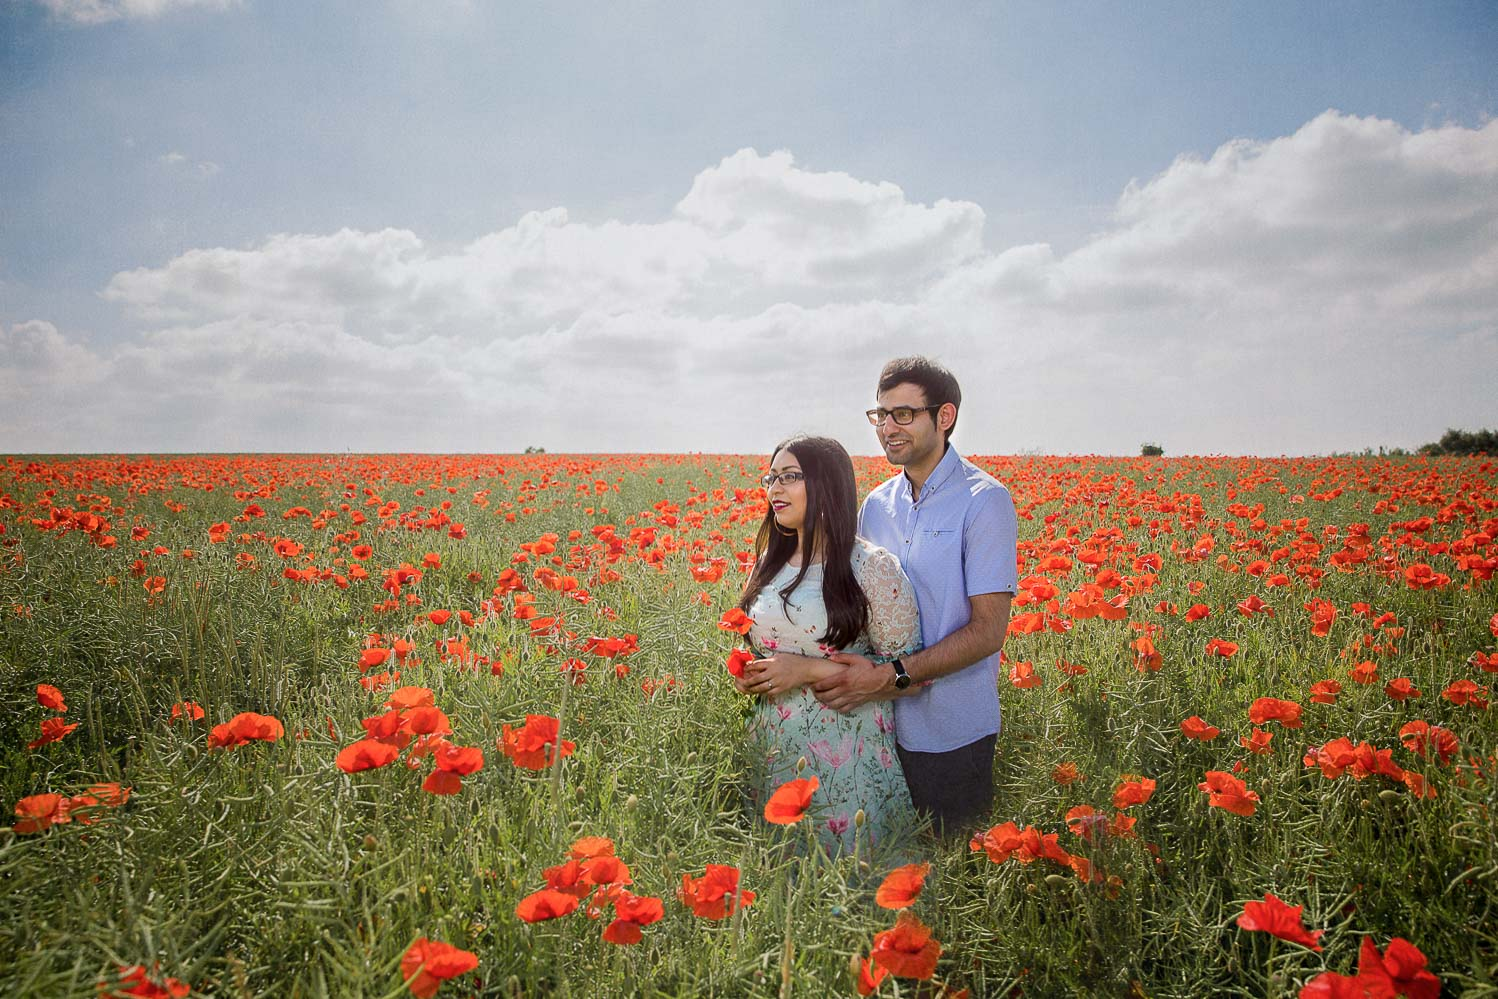 pre-wedding-engagement-shoot-bath-asian-wedding-photographer-london-poppy-poppies-field-natalia-smith-photography-0001.jpg